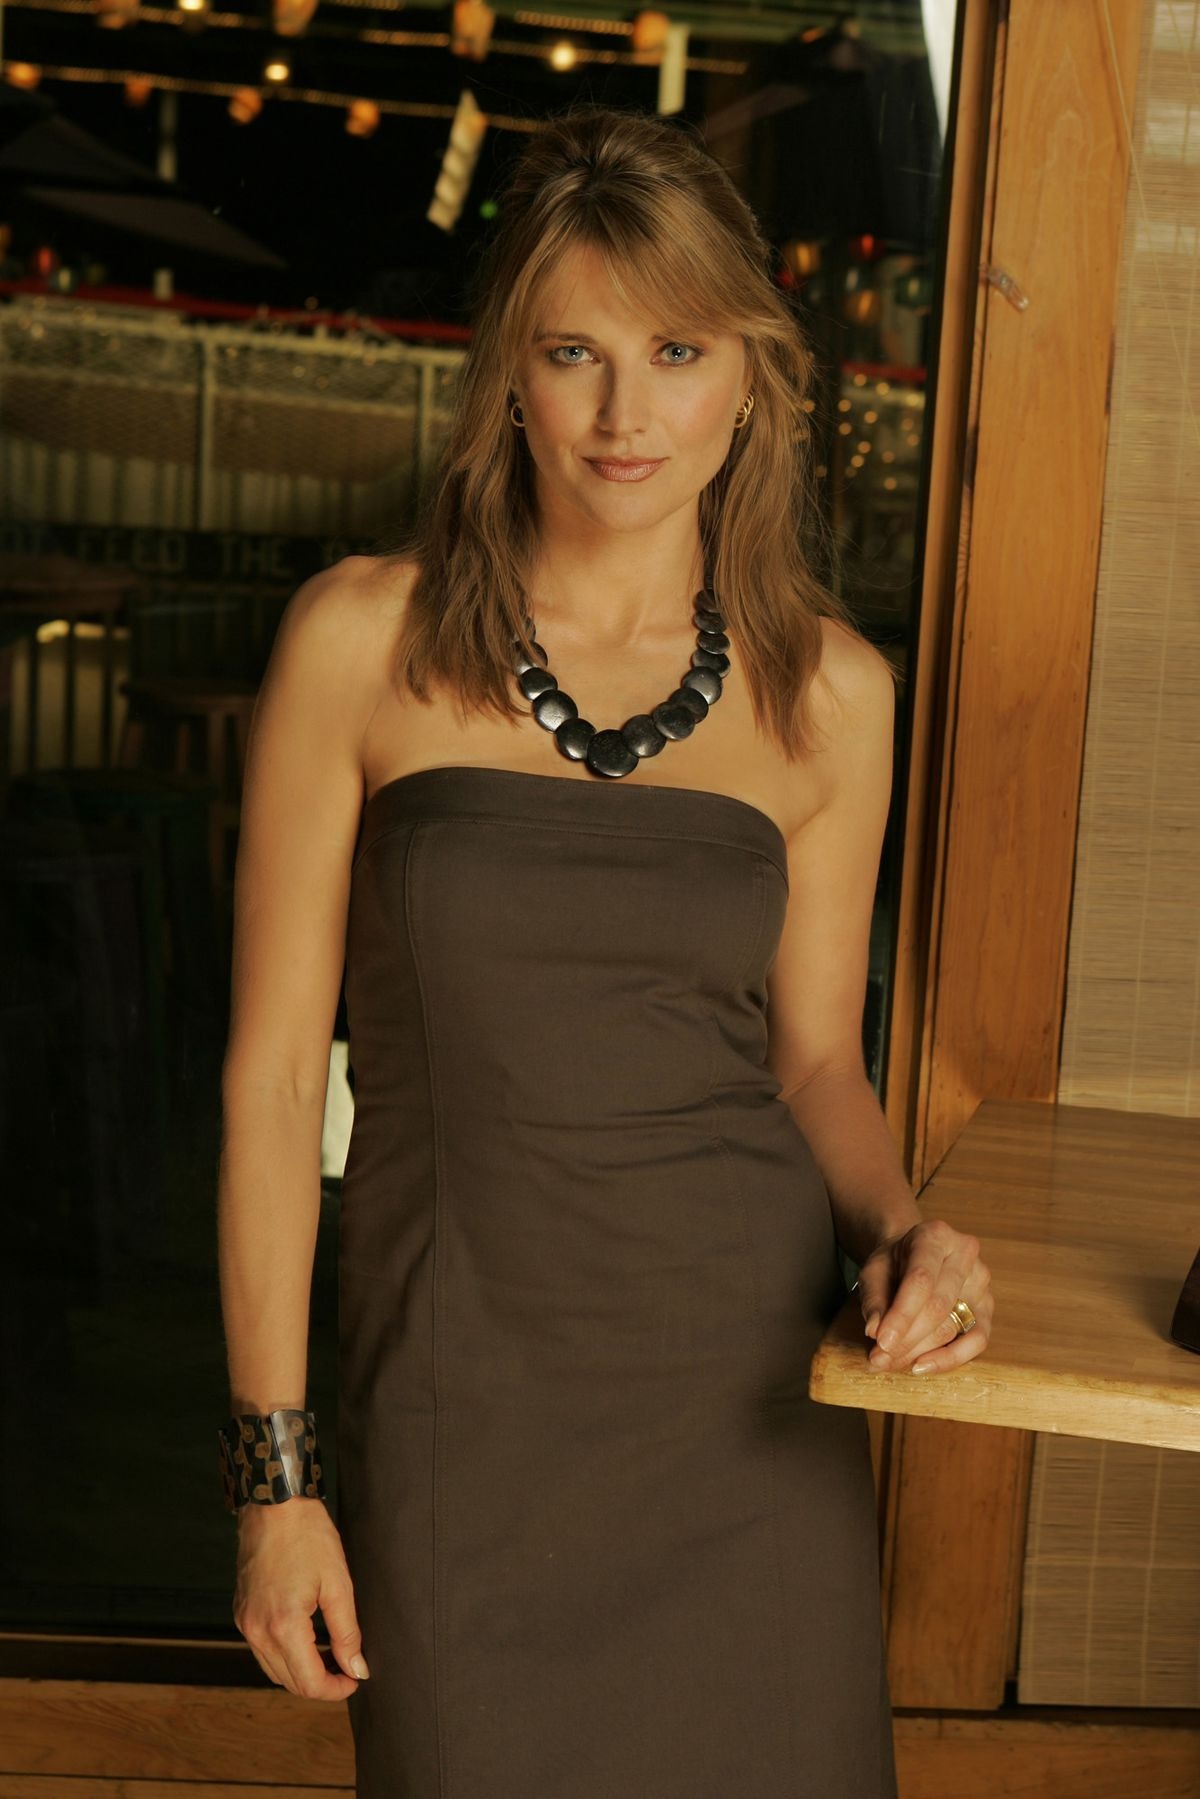 Lucy lawless tochter